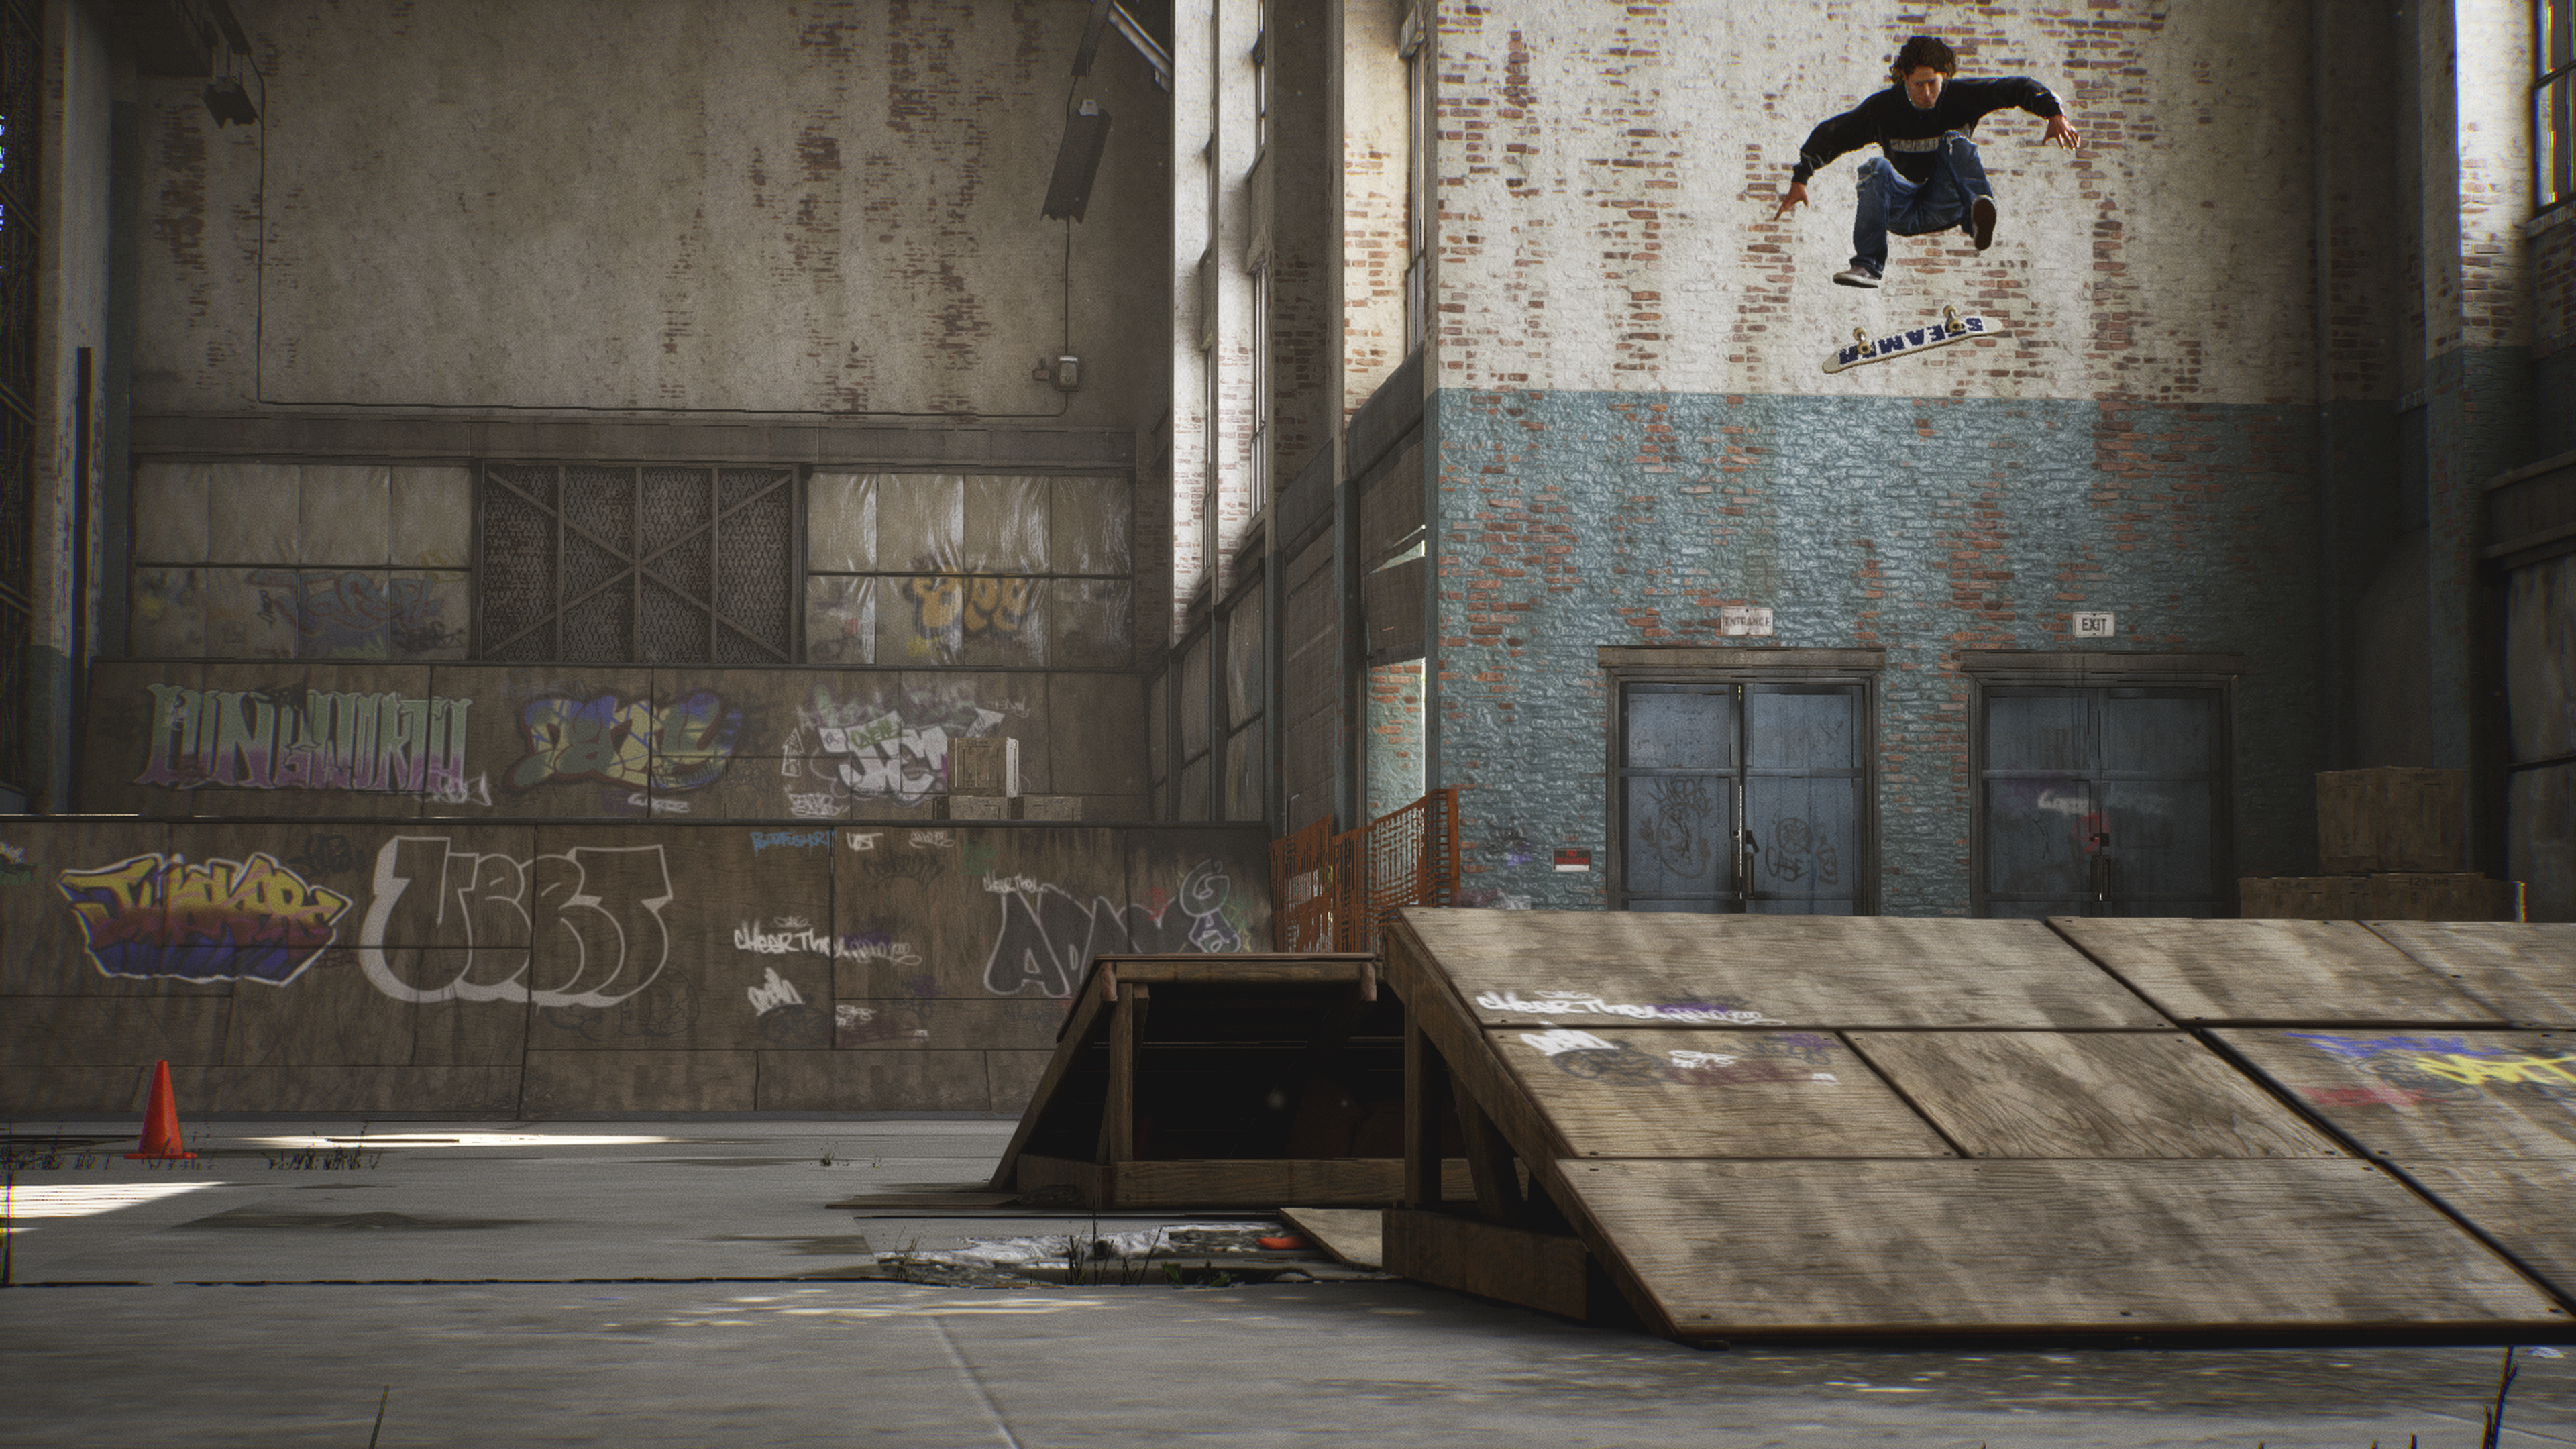 Tony Hawk's Pro Skater 1 + 2 - Gallery Screenshot 2